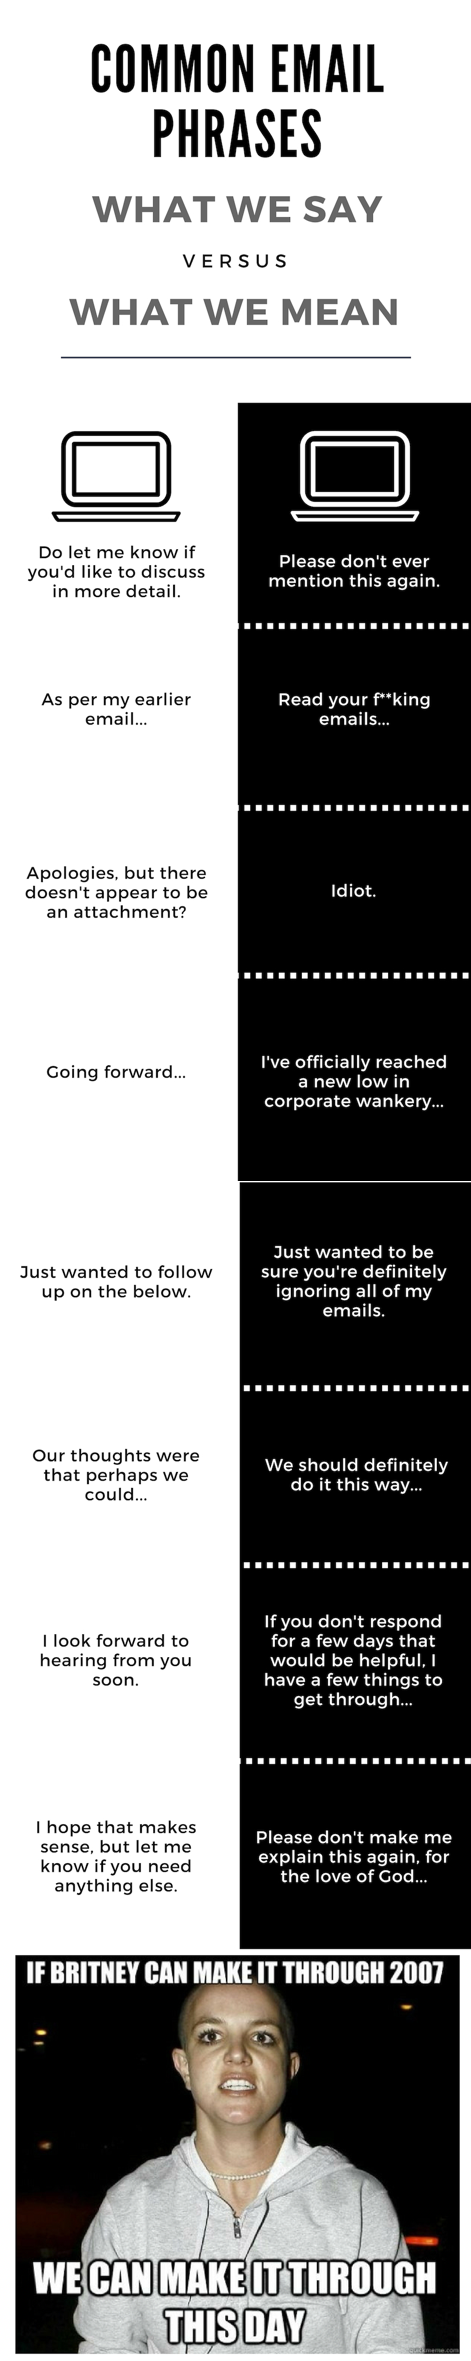 Email phrases infographic